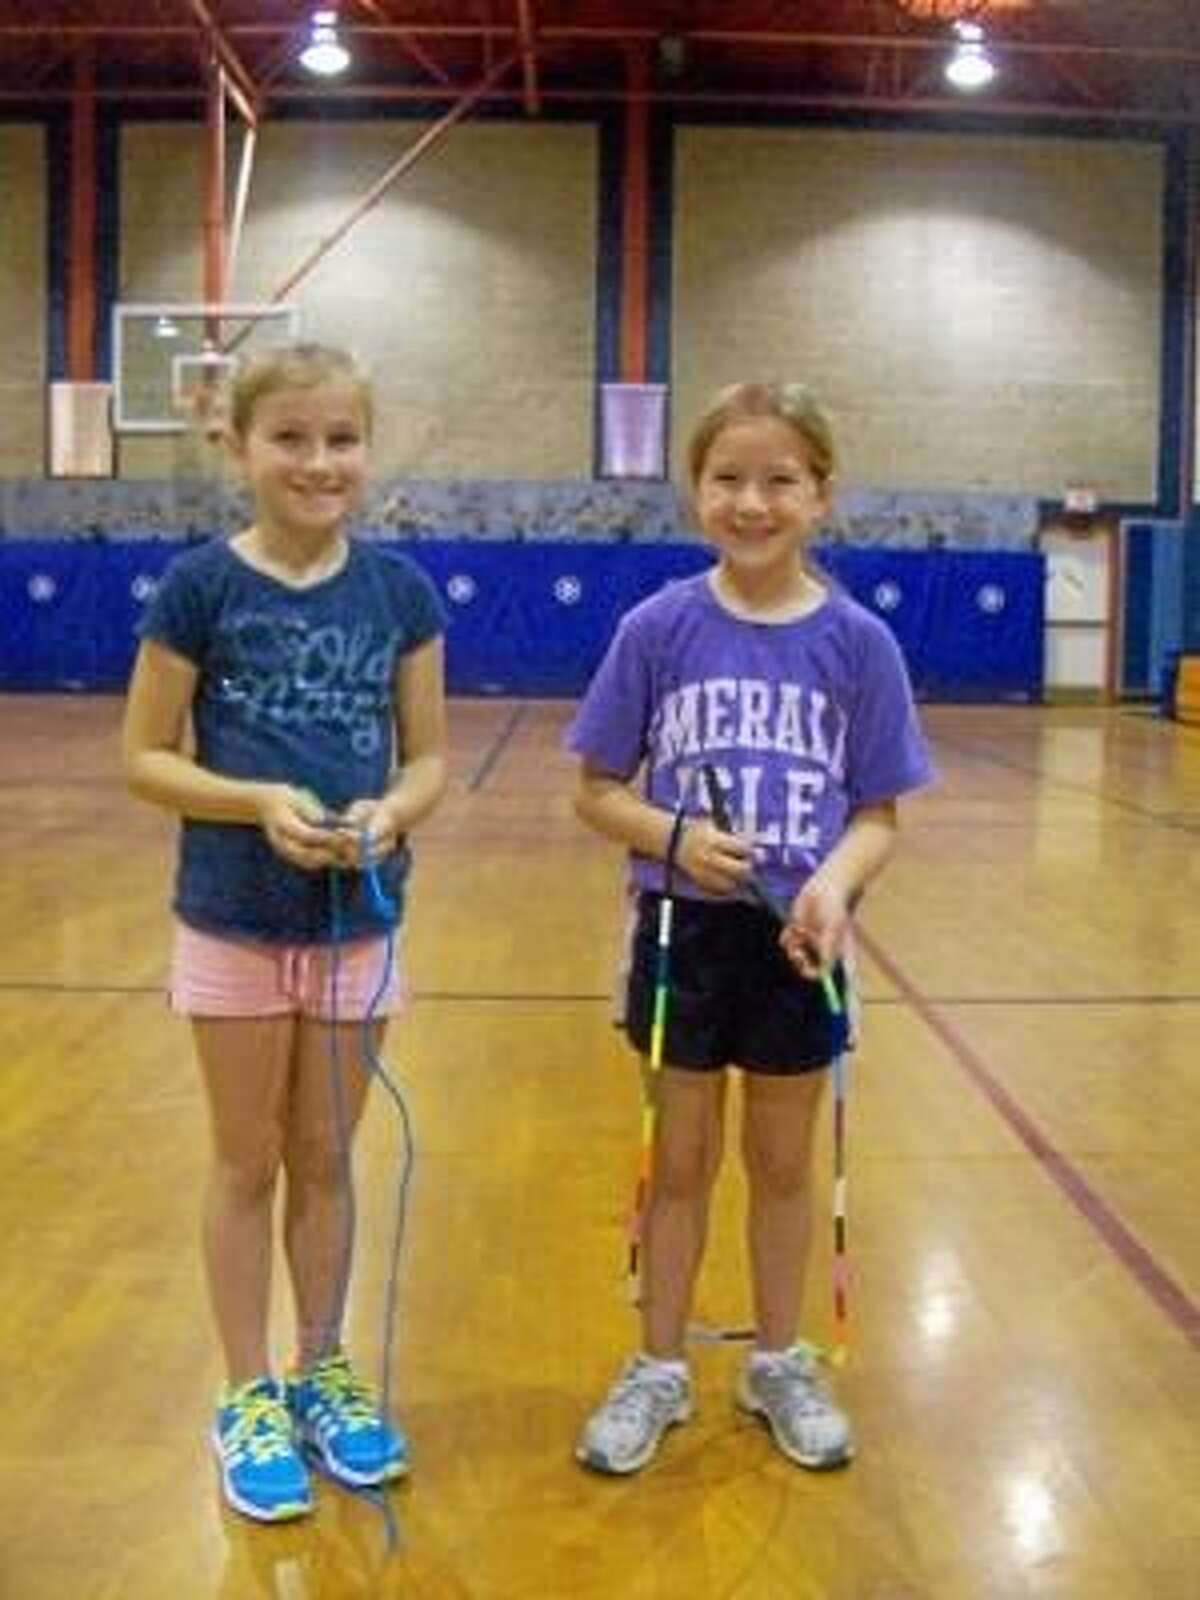 PETER WALLACE/Register Citizen Most Forbes Flyers, like Olivia Gordon and Suzie Navin, both 9 years old, begin their Flyer careers in the third grade.